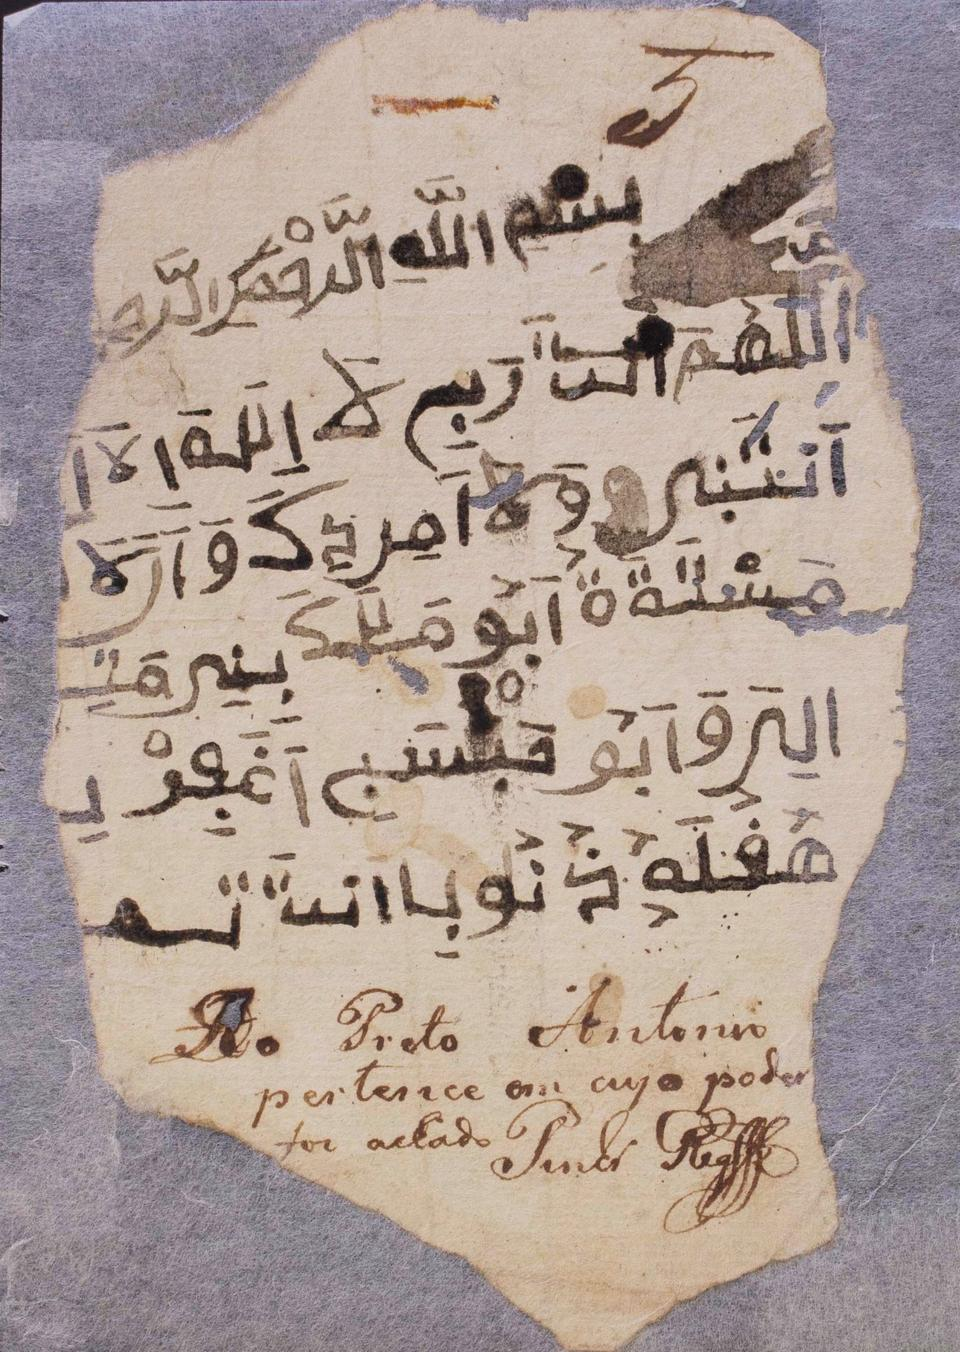 A manuscript written by a Brazilian slave in an Arabic script.